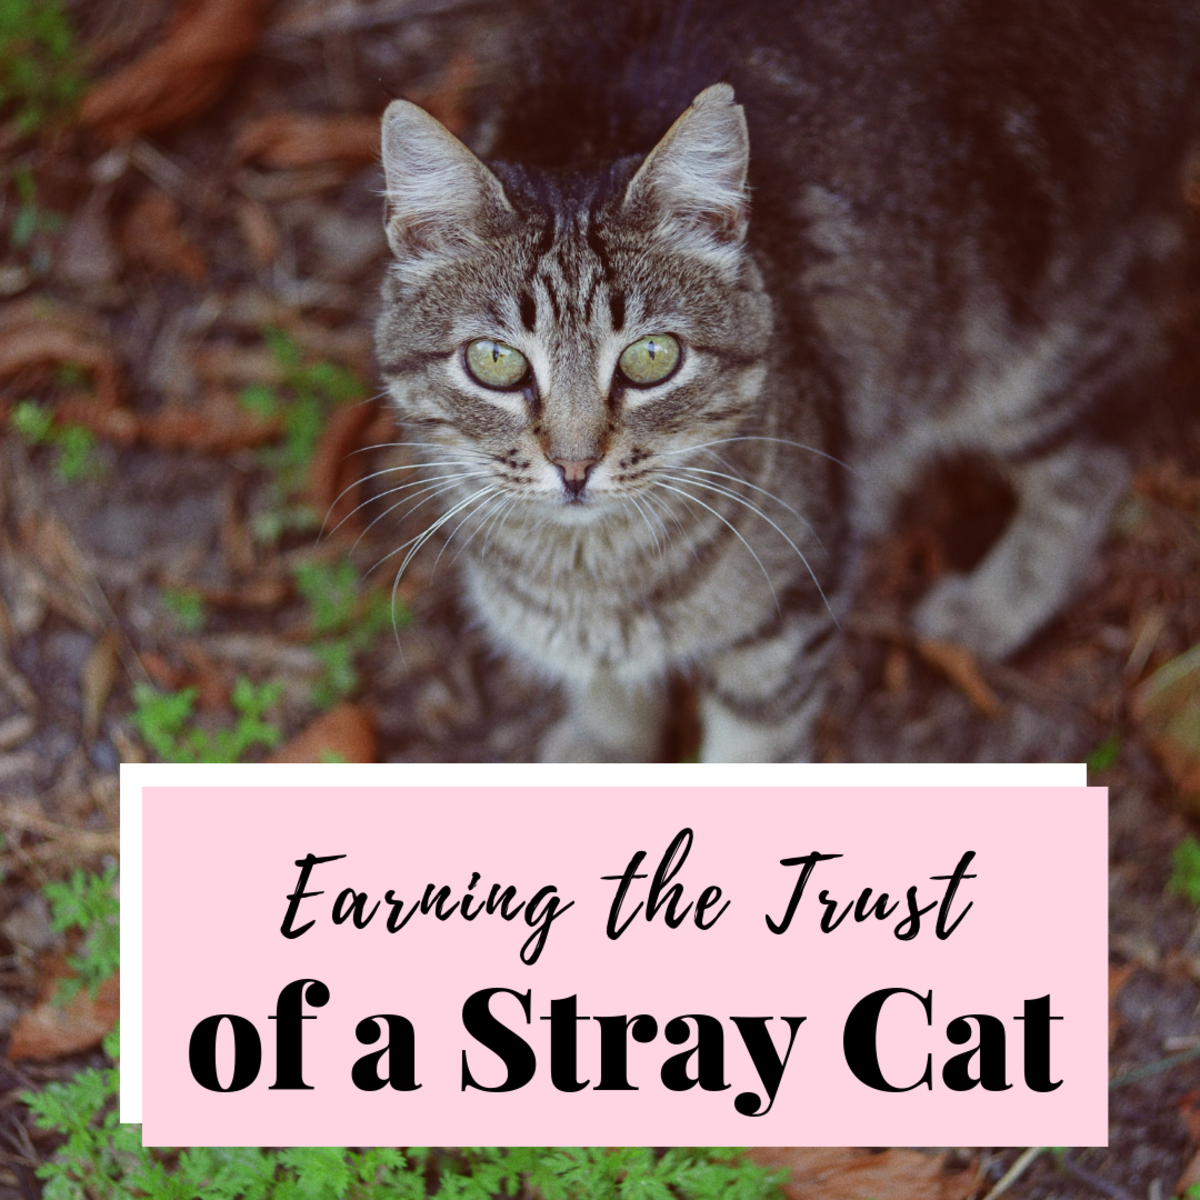 How To Win The Trust Of A Stray Cat Pethelpful By Fellow Animal Lovers And Experts